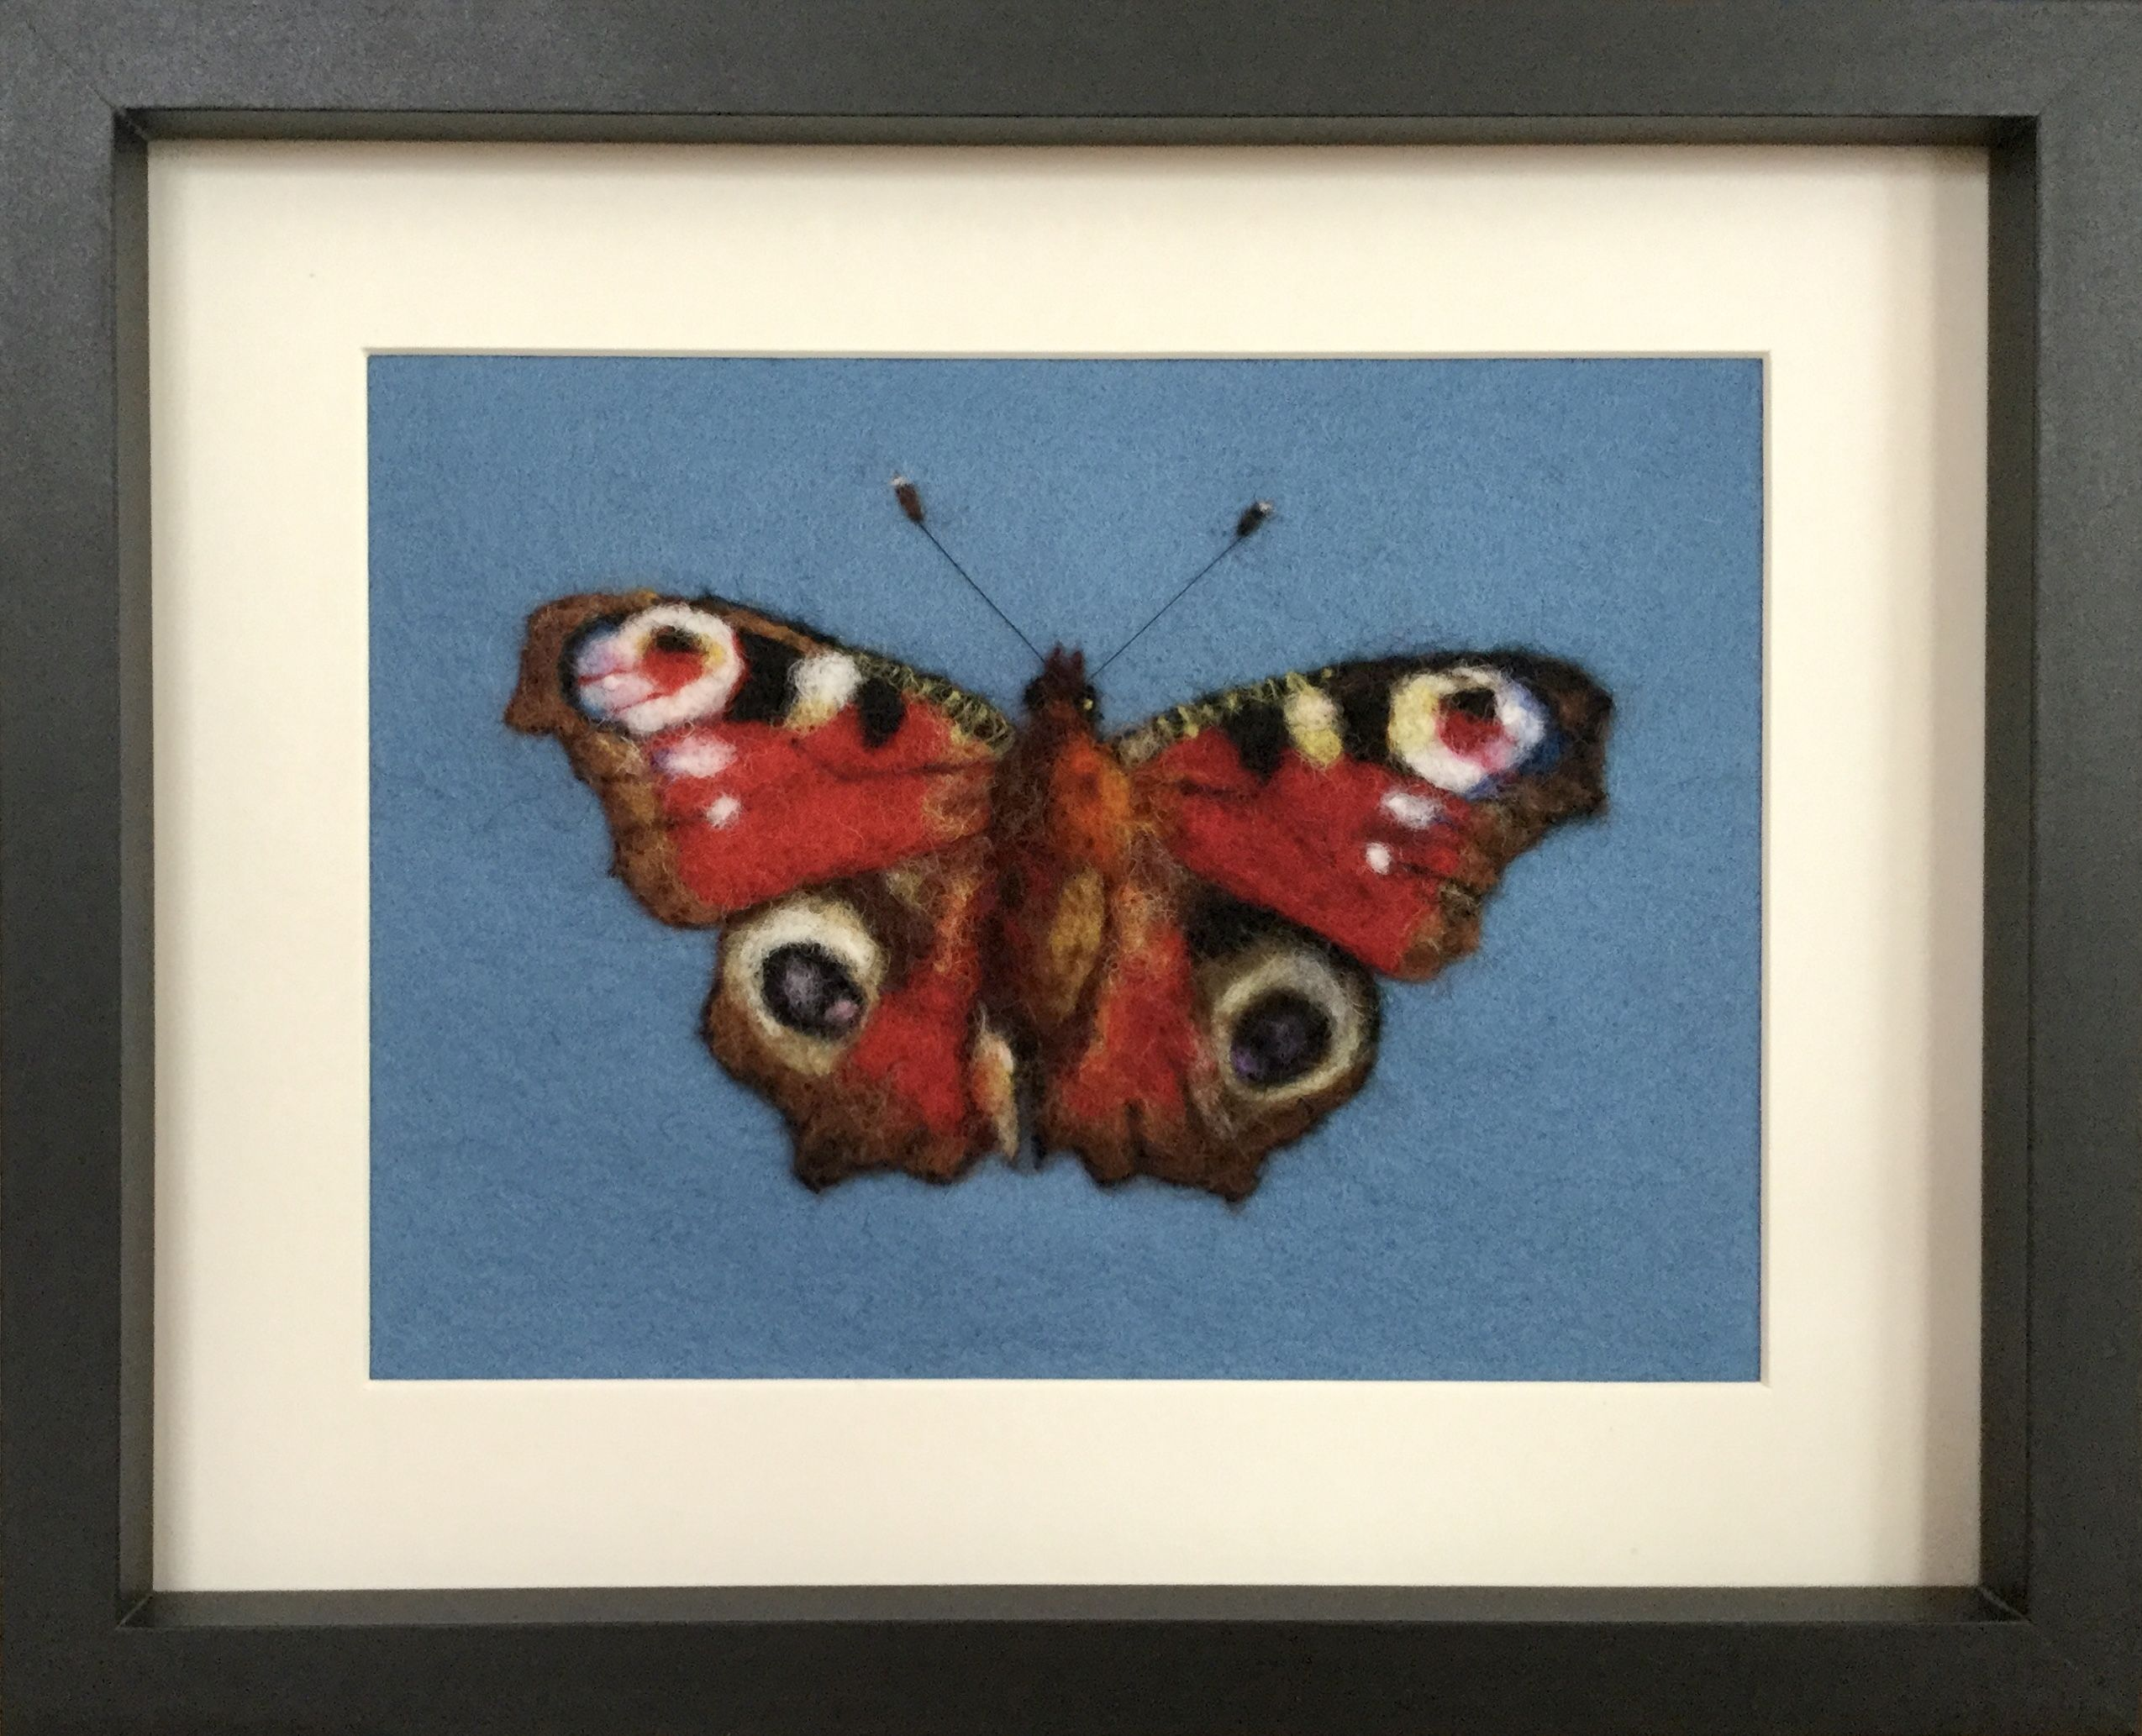 #butterfly #homedecor #woolart #needlefelting #fibreart